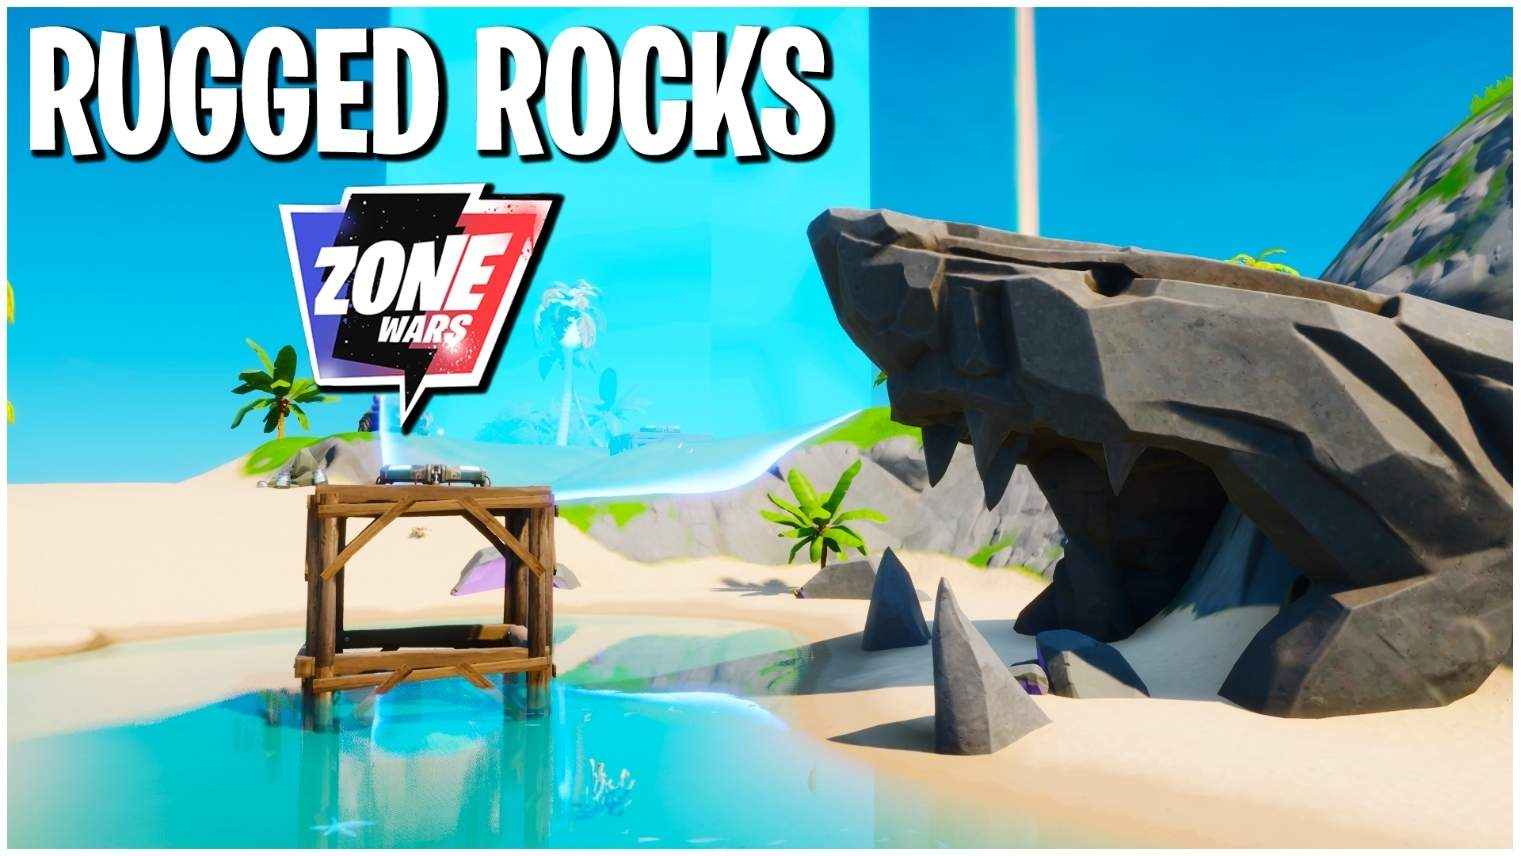 RUGGED ROCKS - FAST ZONEWARS!